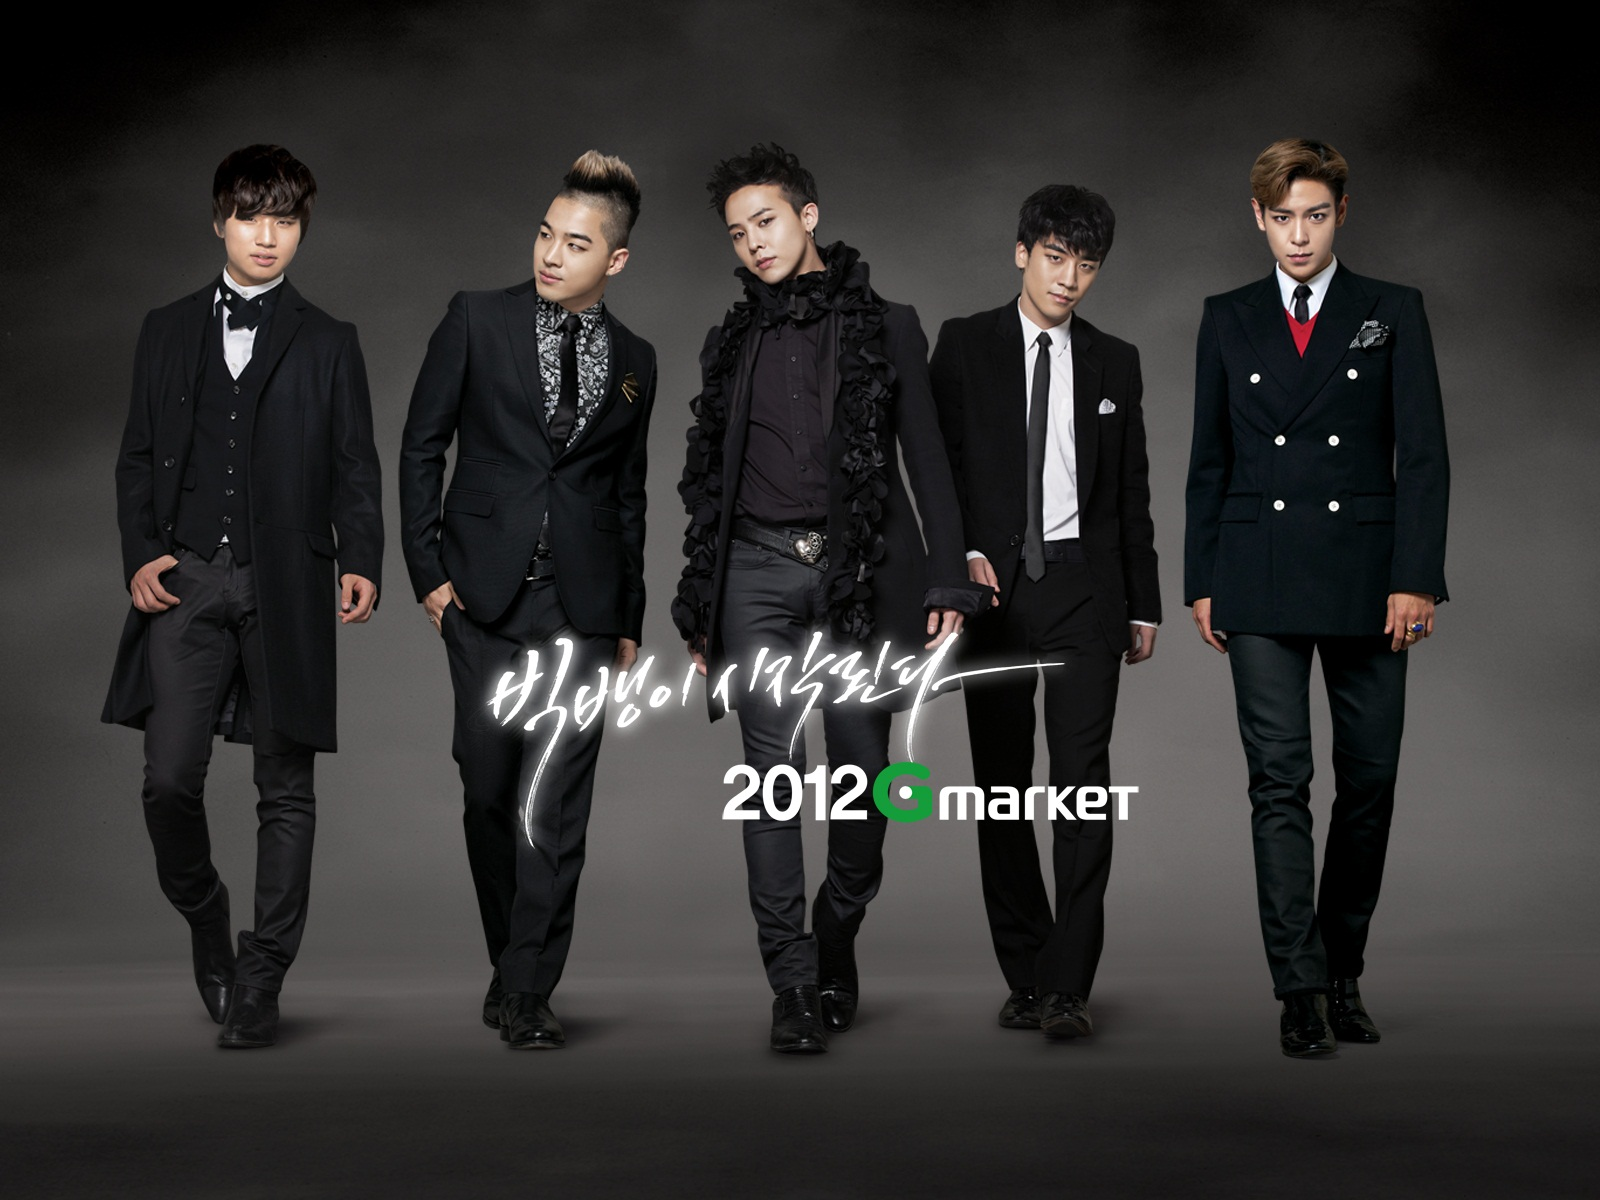 big bang 빅뱅 bigbang wallpaper hd 8 big bang 빅뱅